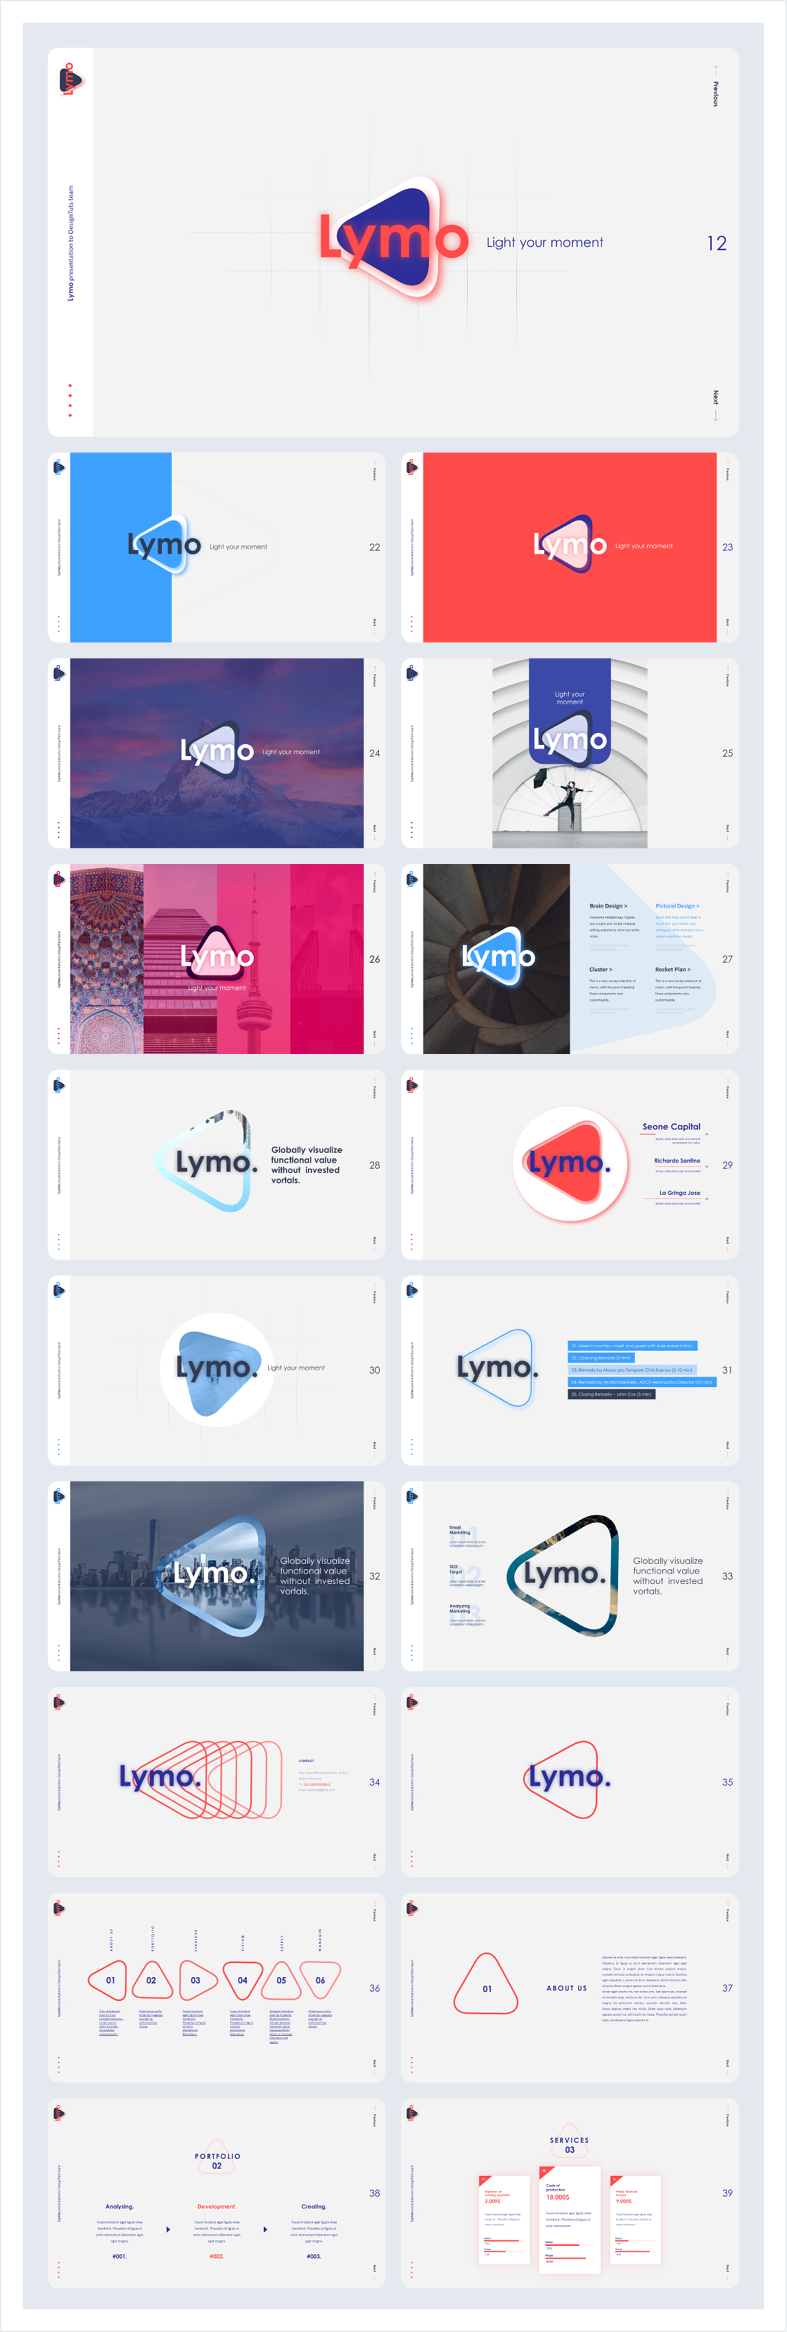 Lymo Powerpoint Presentation Template - 13